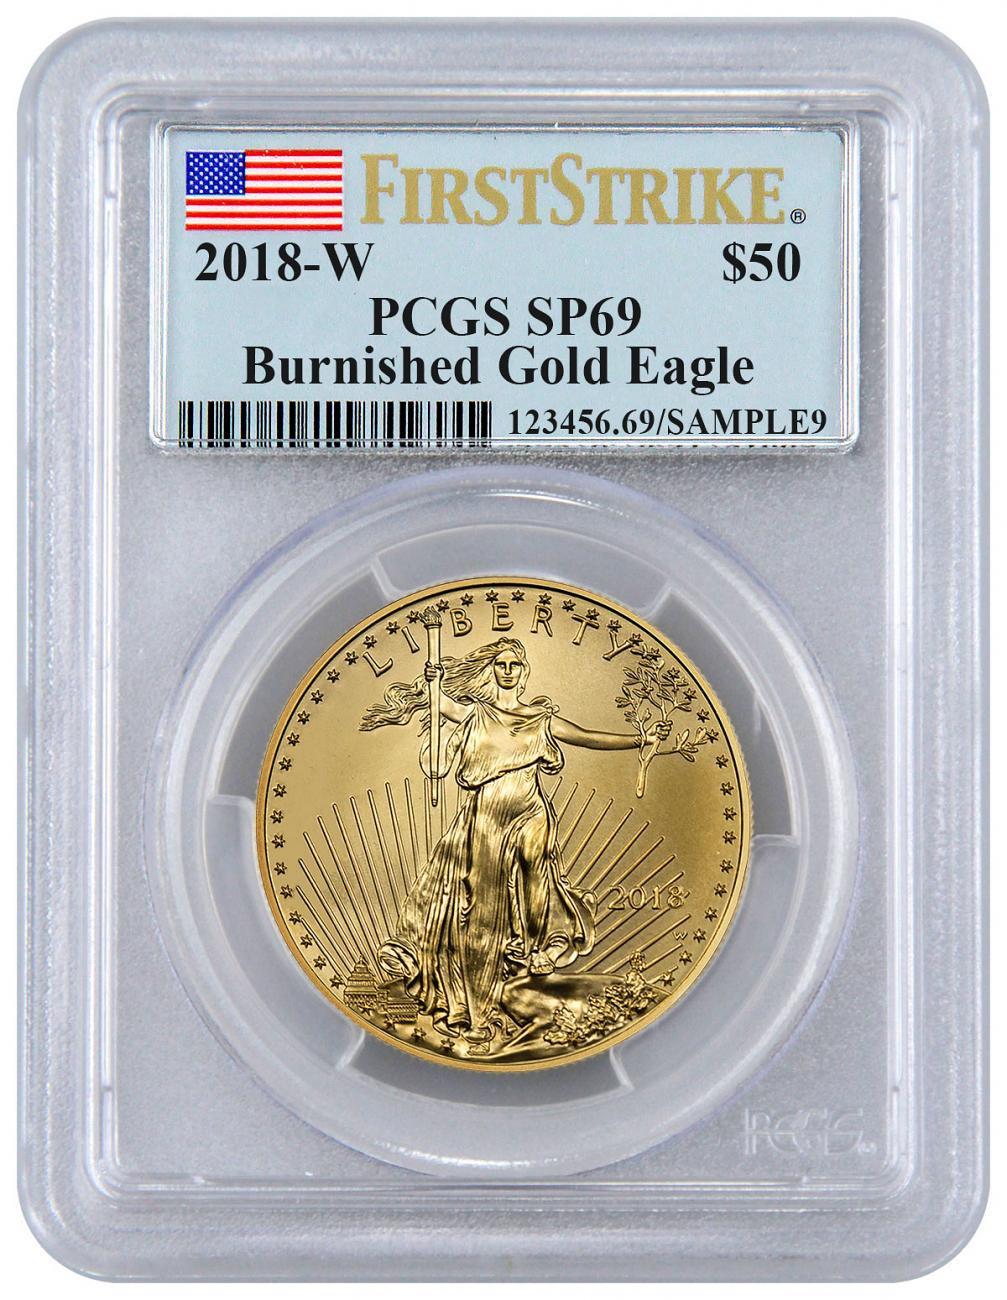 2018-W 1 oz Burnished Gold American Eagle $50 PCGS SP69 FS Flag Label